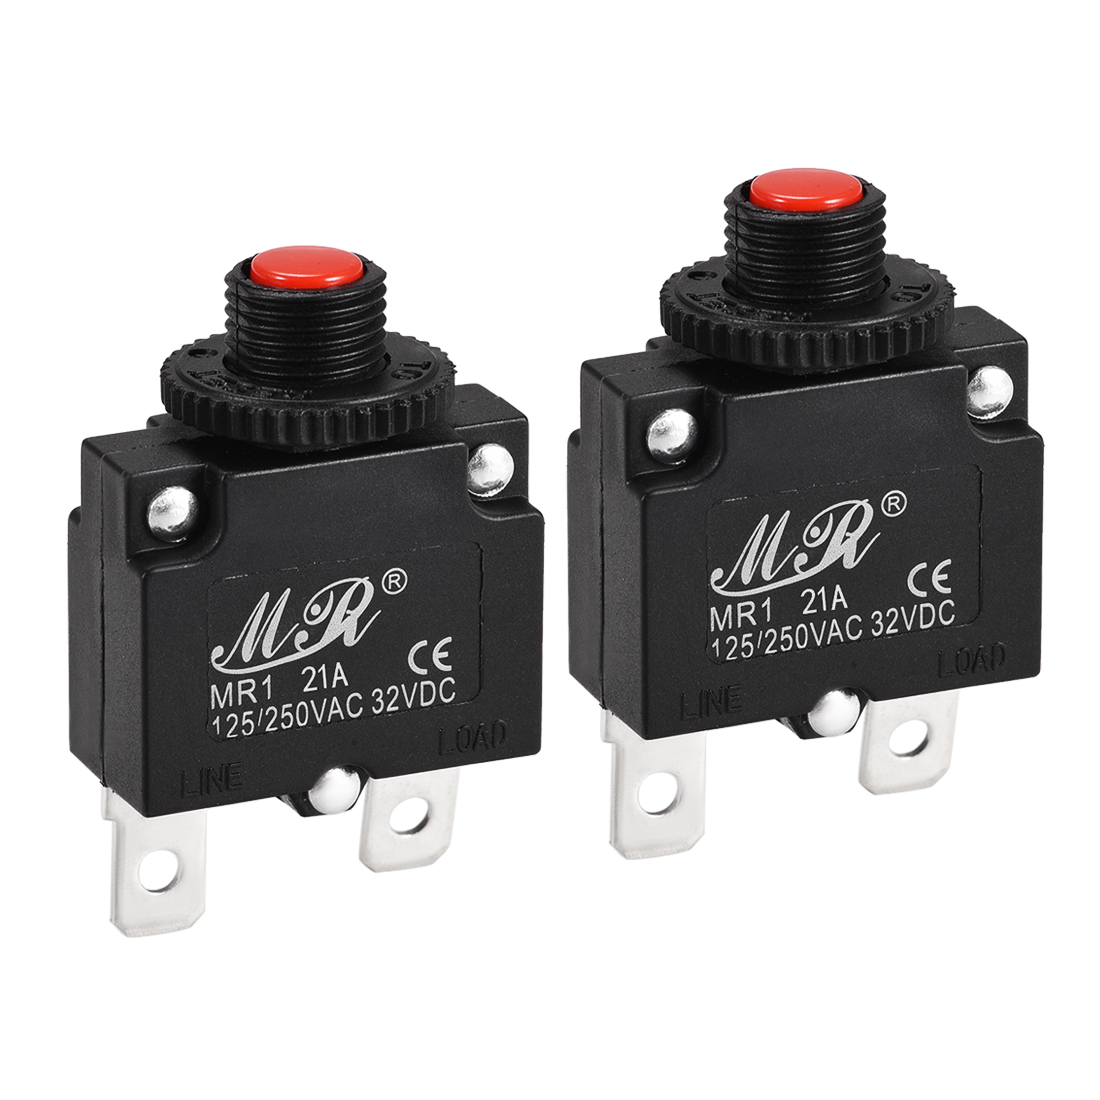 2 Pcs 21A Push Button Manual Reset Overload Protector Thermal Circuit Breakers